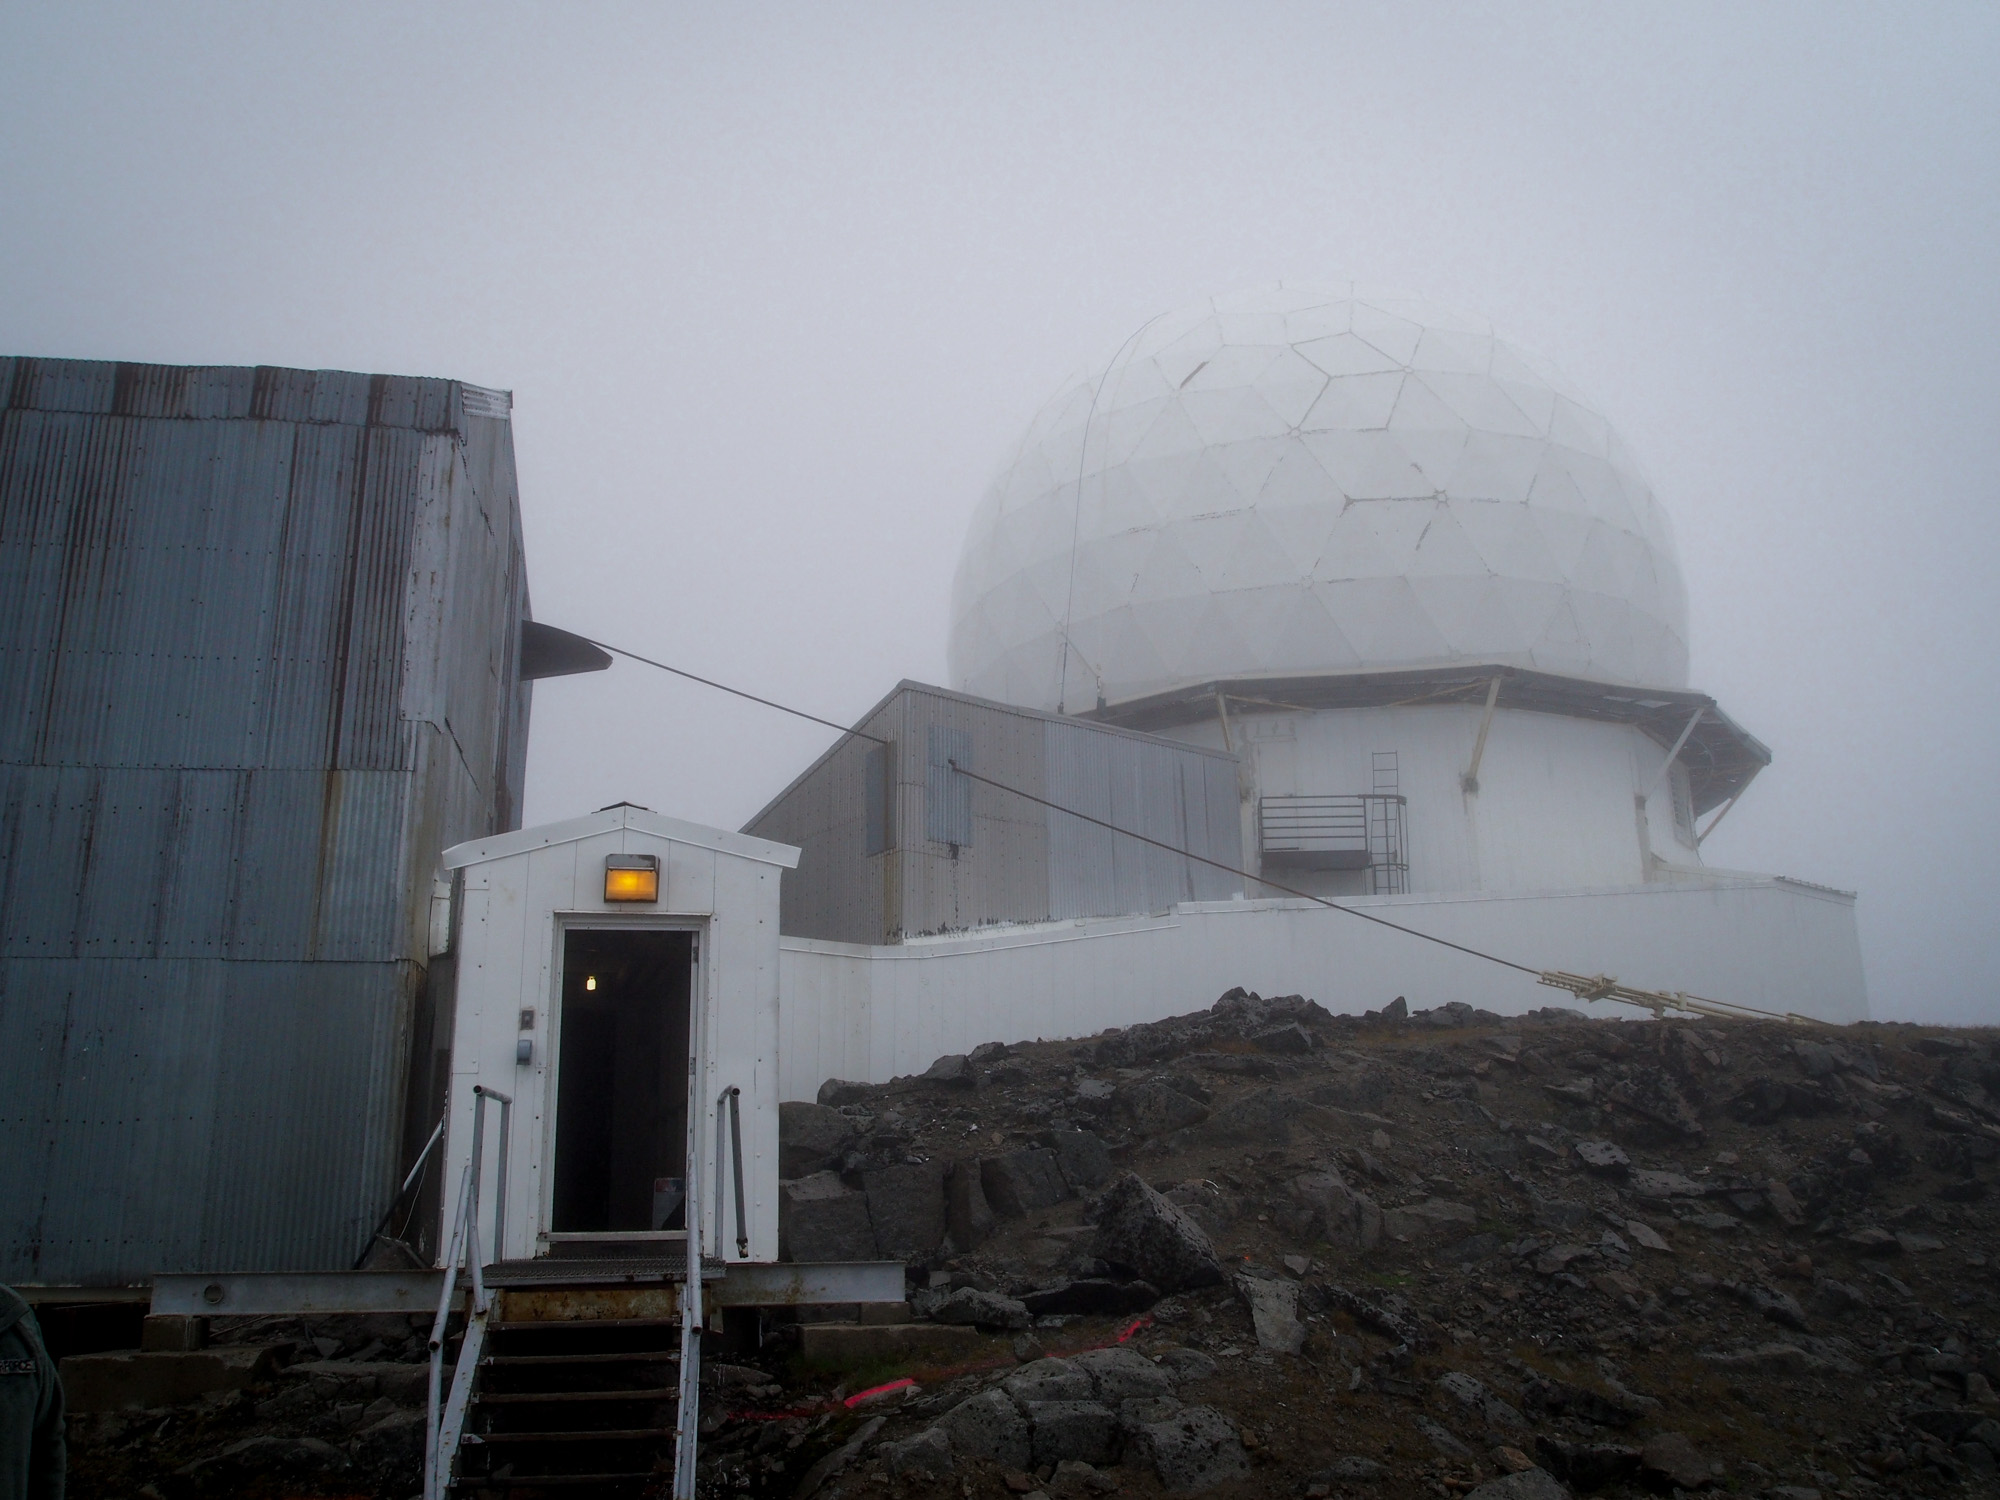 The Romanzof radar site was built in the early 1950s. (Photo by Zachariah Hughes/Alaska Public Media)